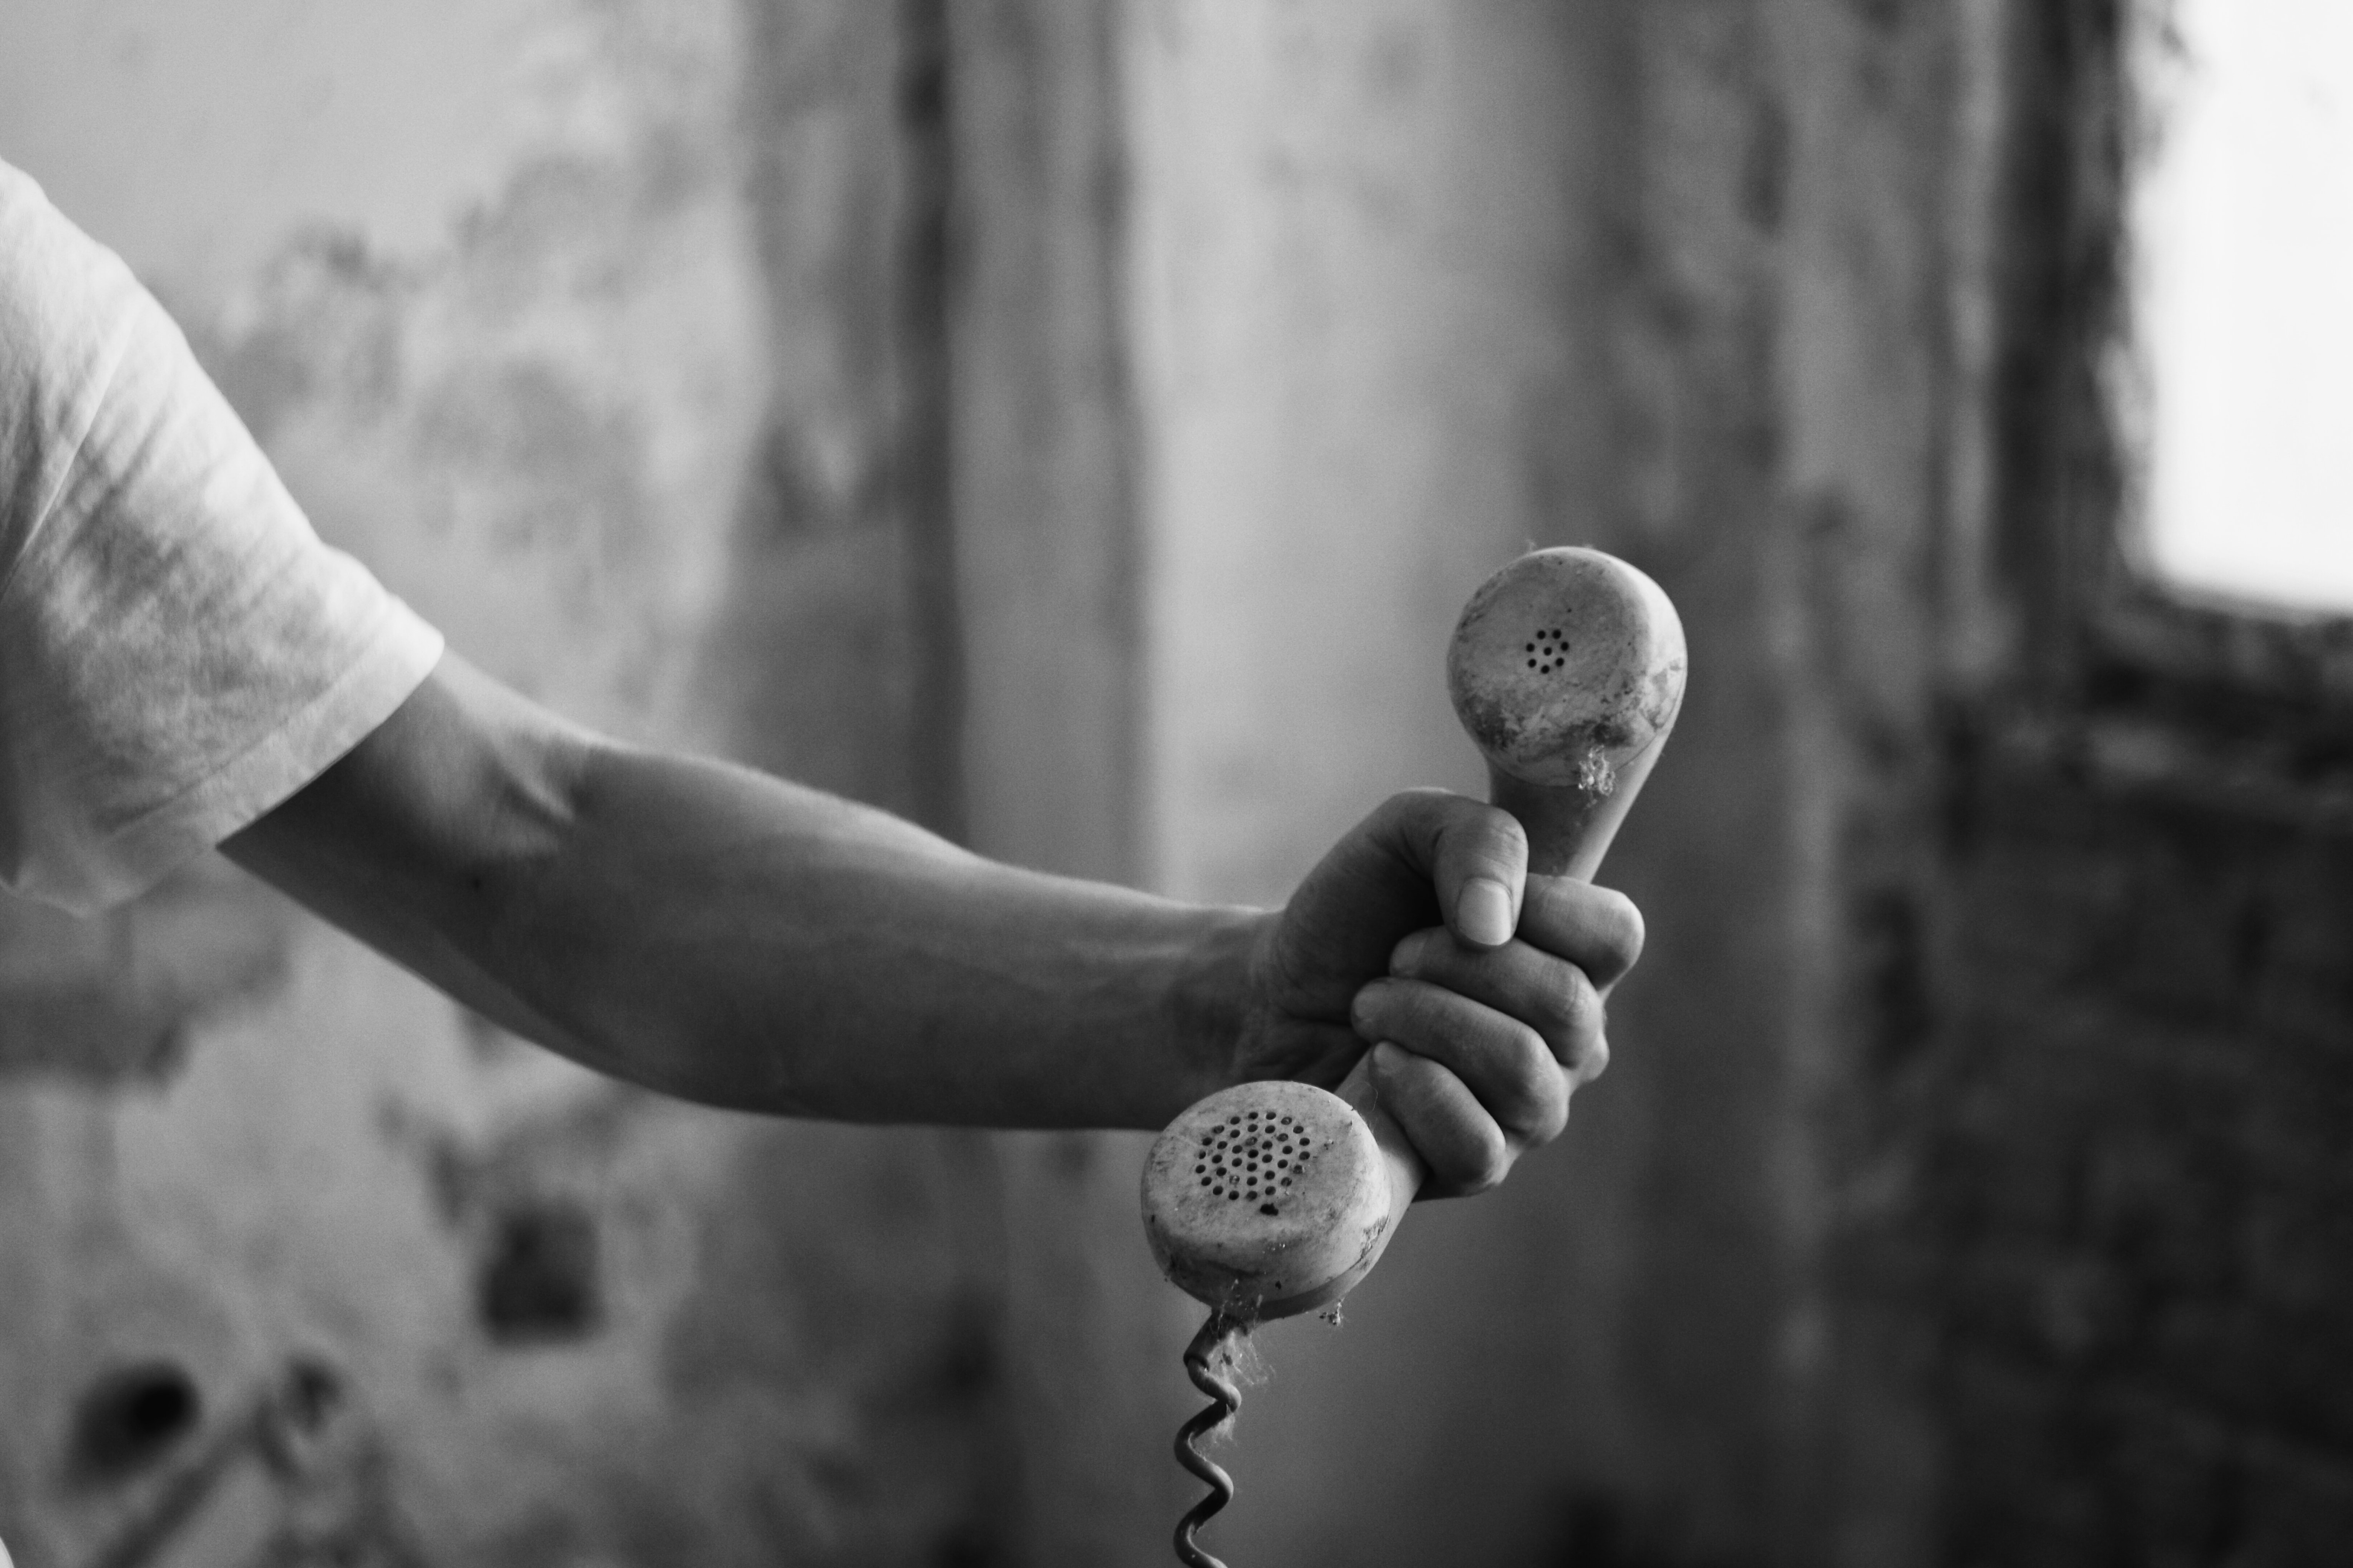 person holding telephone in grayscale phot